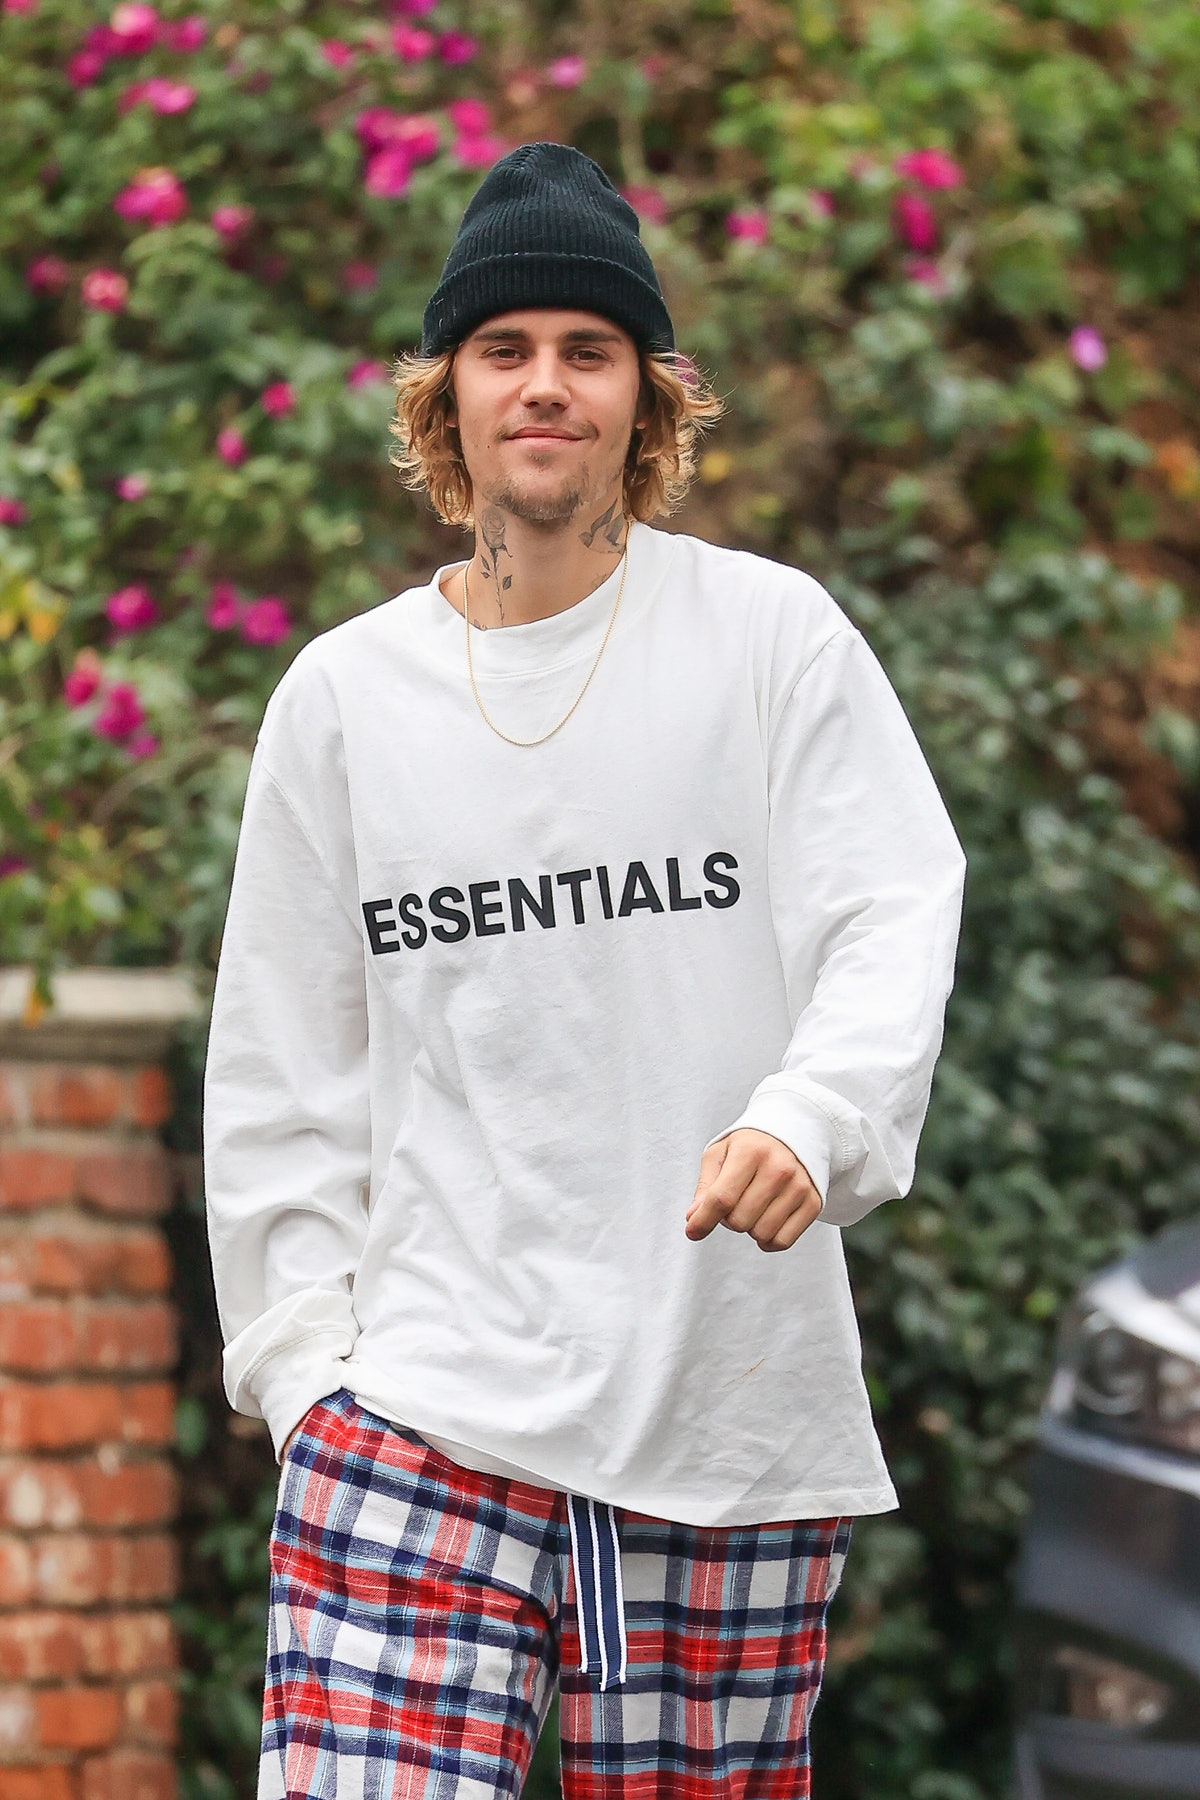 Justin Bieber is seen on February 9, 2021 in Los Angeles, California. (Photo by 007/MEGA/GC Images)